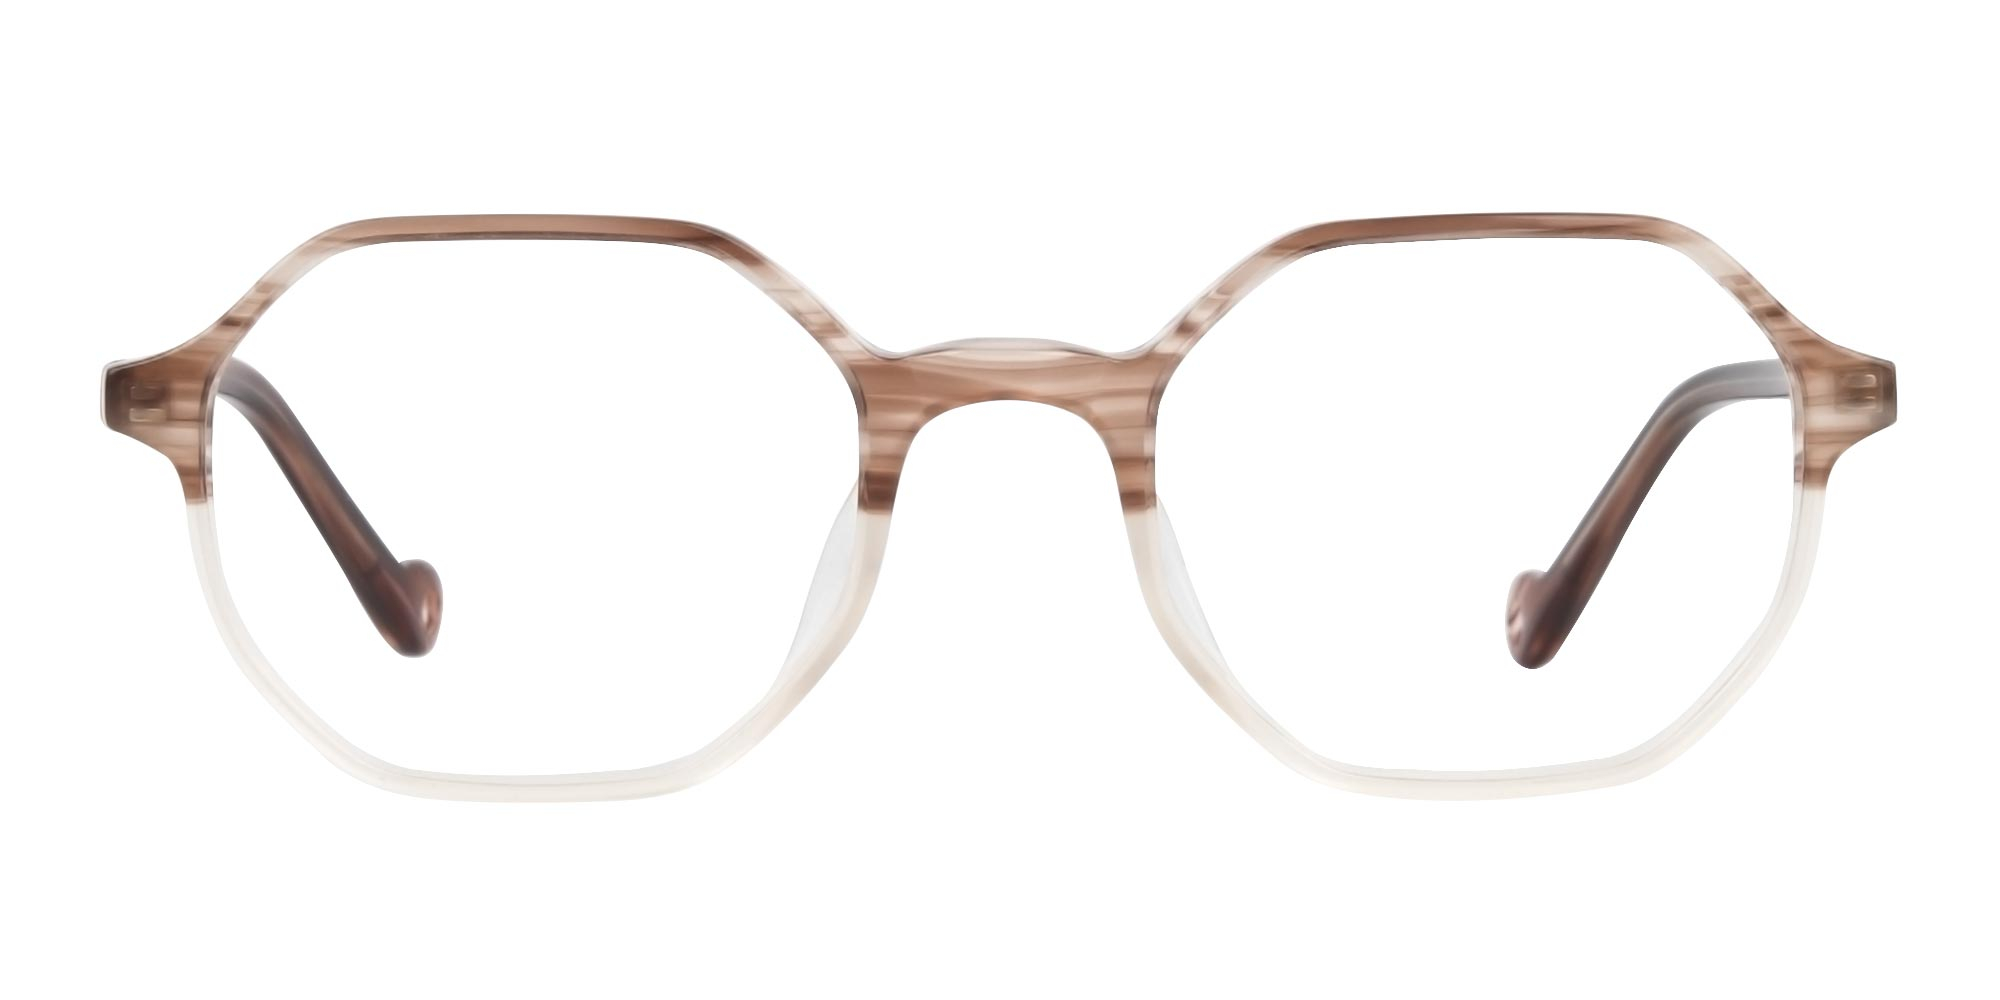 Stripe Brown and Nude Octagonal Glasses trends 2020